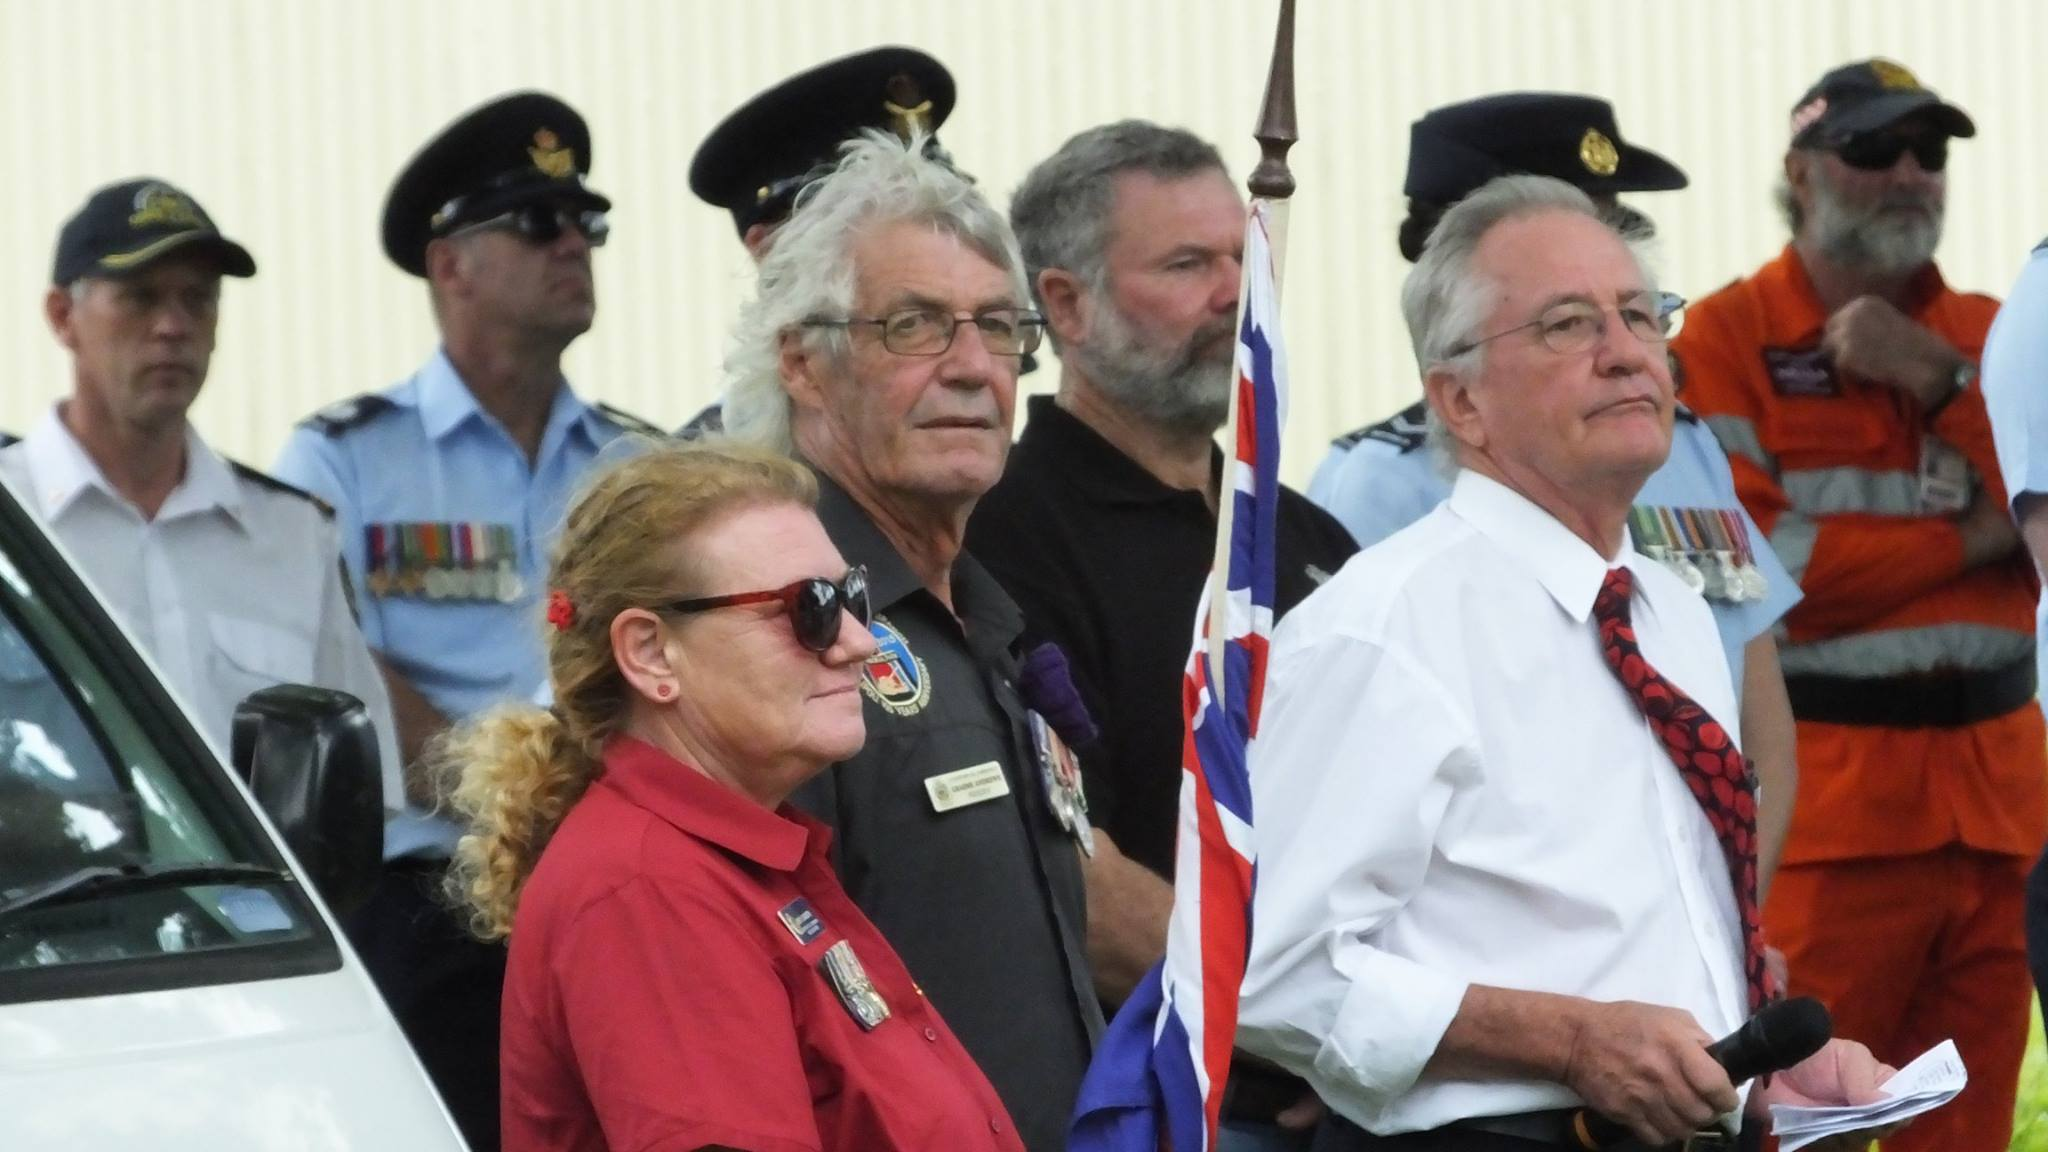 Cooktown Anzac Day 2016